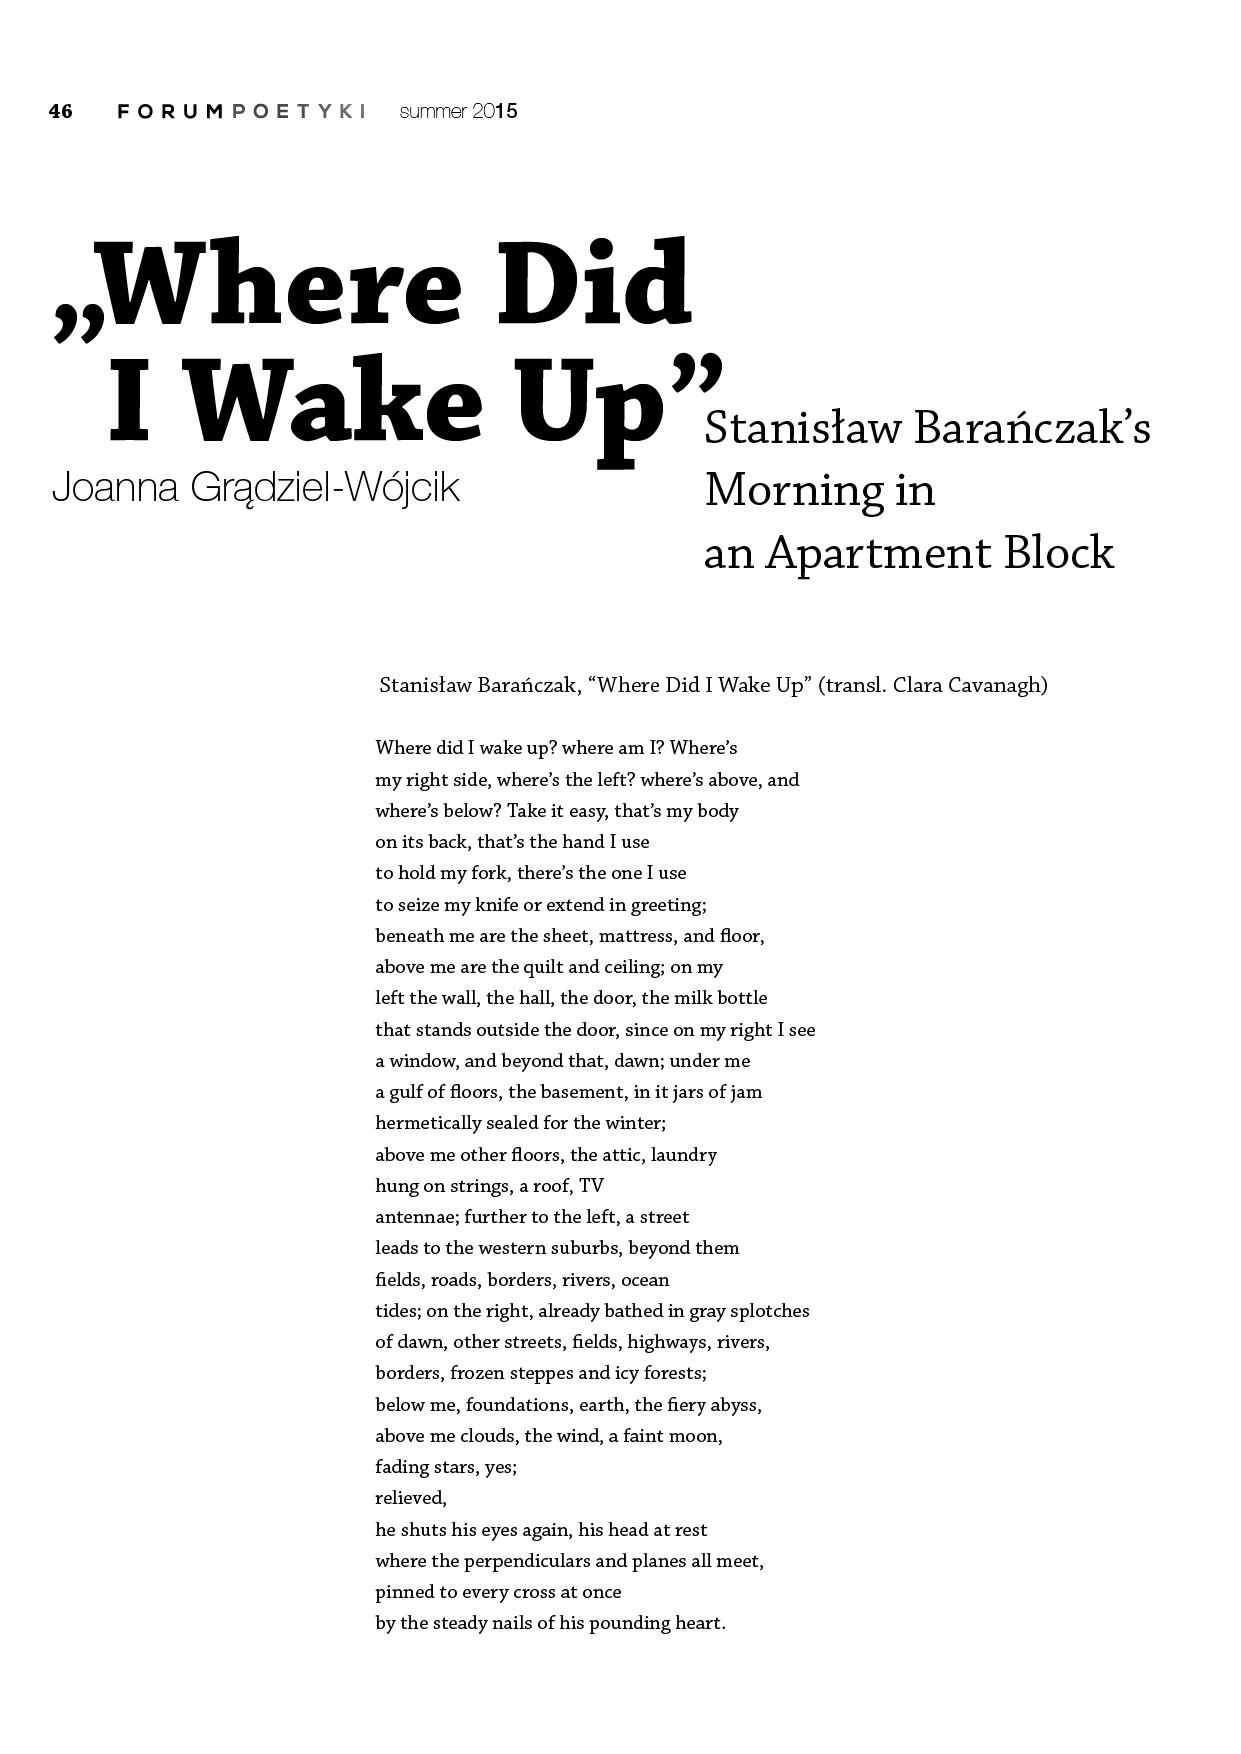 """Where Did I Wake Up"". Stanisław Barańczak's Morning in an Apartment Block"